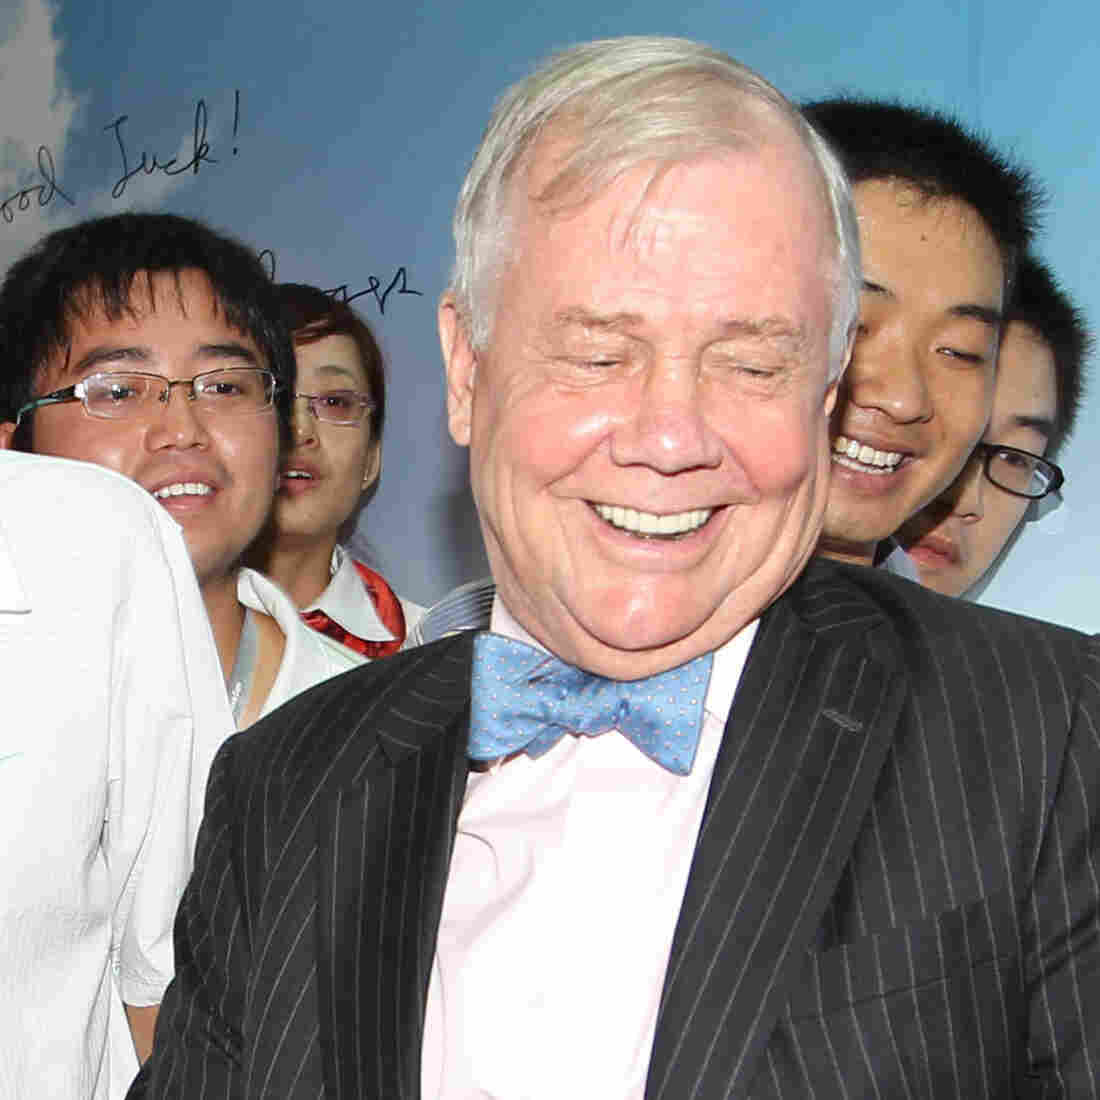 China has welcomed U.S. business expertise for many years as its economy has advanced rapidly. Jim Rogers, a prominent U.S. investor, is shown here in China at the 2nd Hunan Finance Expo in 2011. However, the Chinese are becoming more confident in their own business skills and more critical of American practices in recent years, according to U.S. business executives working in China.